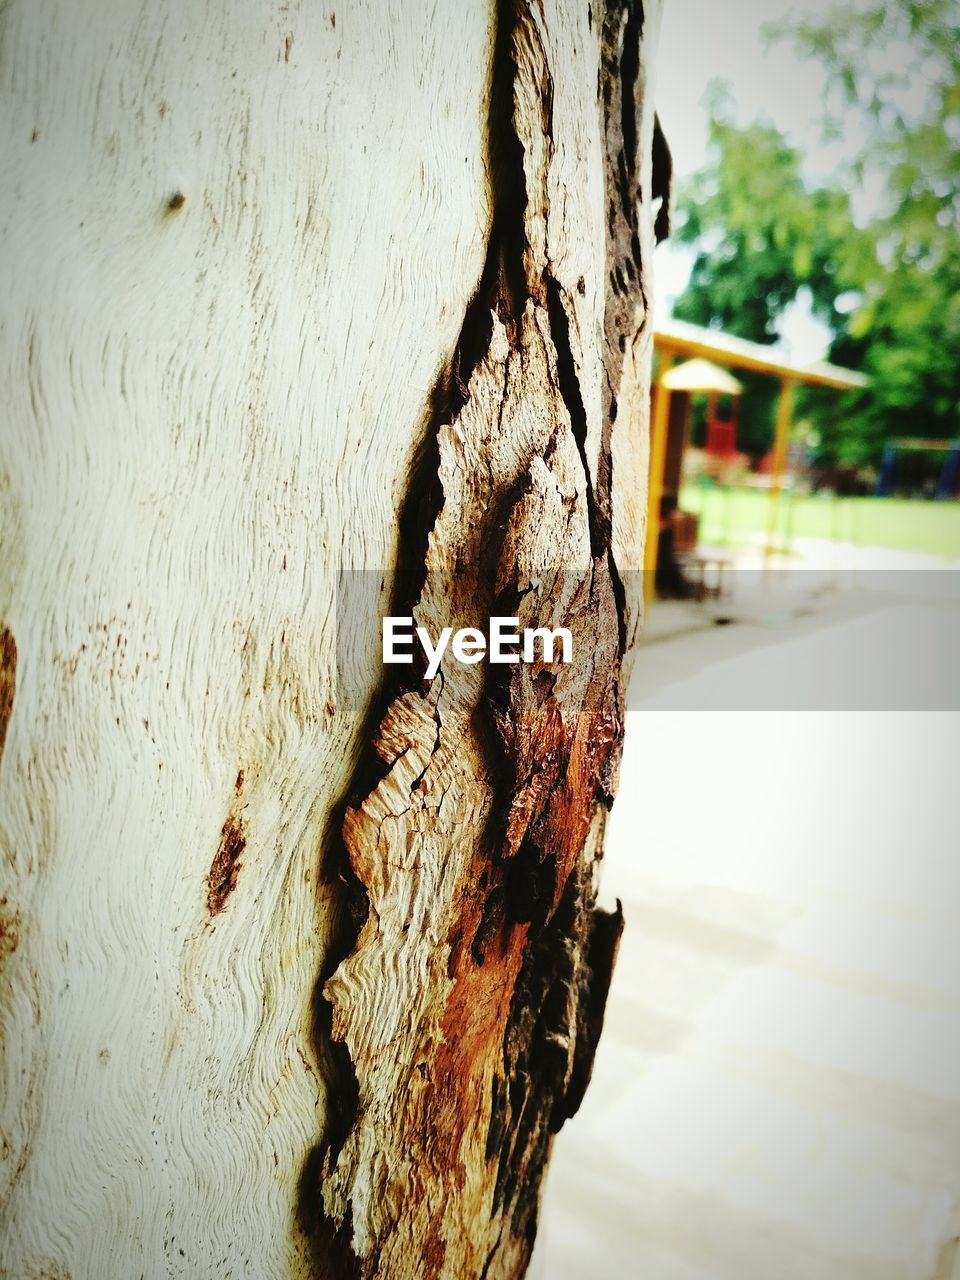 tree trunk, tree, textured, wood - material, close-up, rough, day, focus on foreground, no people, outdoors, bark, built structure, nature